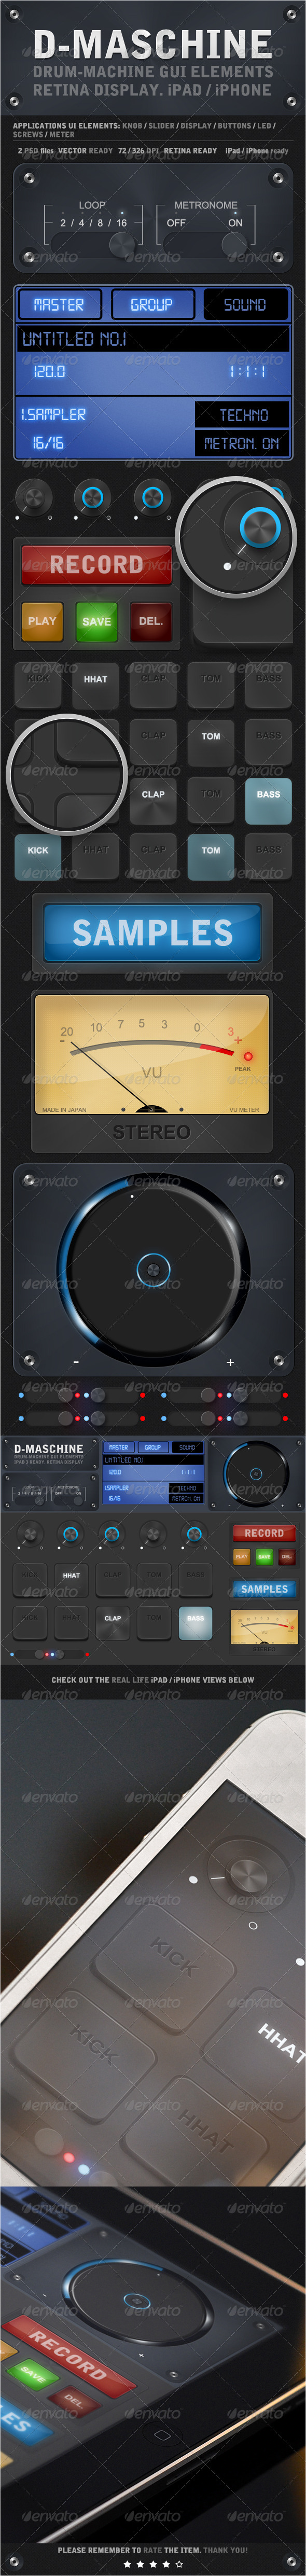 D-Maschine iPad / iPhone UI Elements - User Interfaces Web Elements